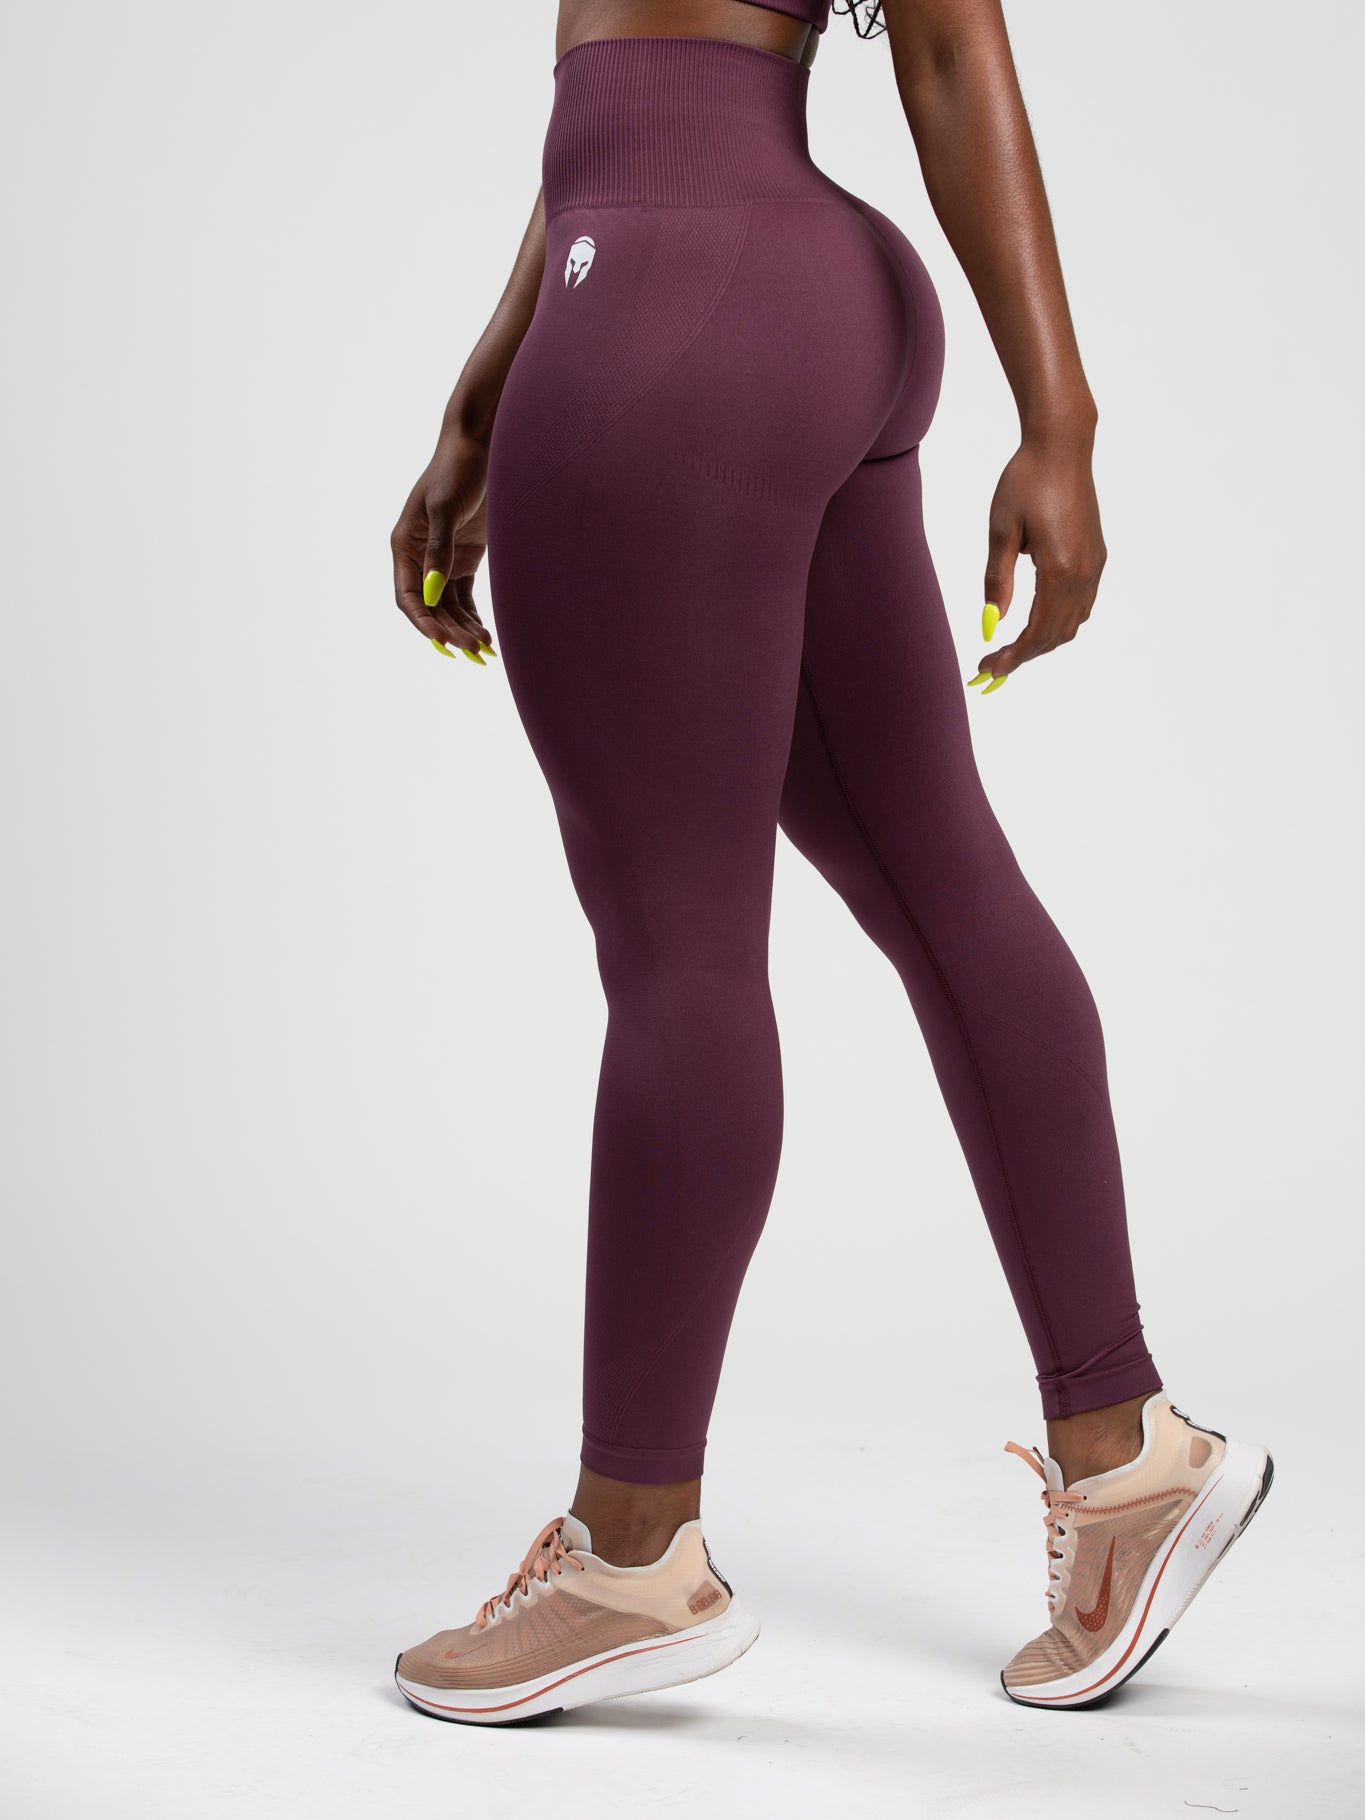 VBRNT Leggings - Purple